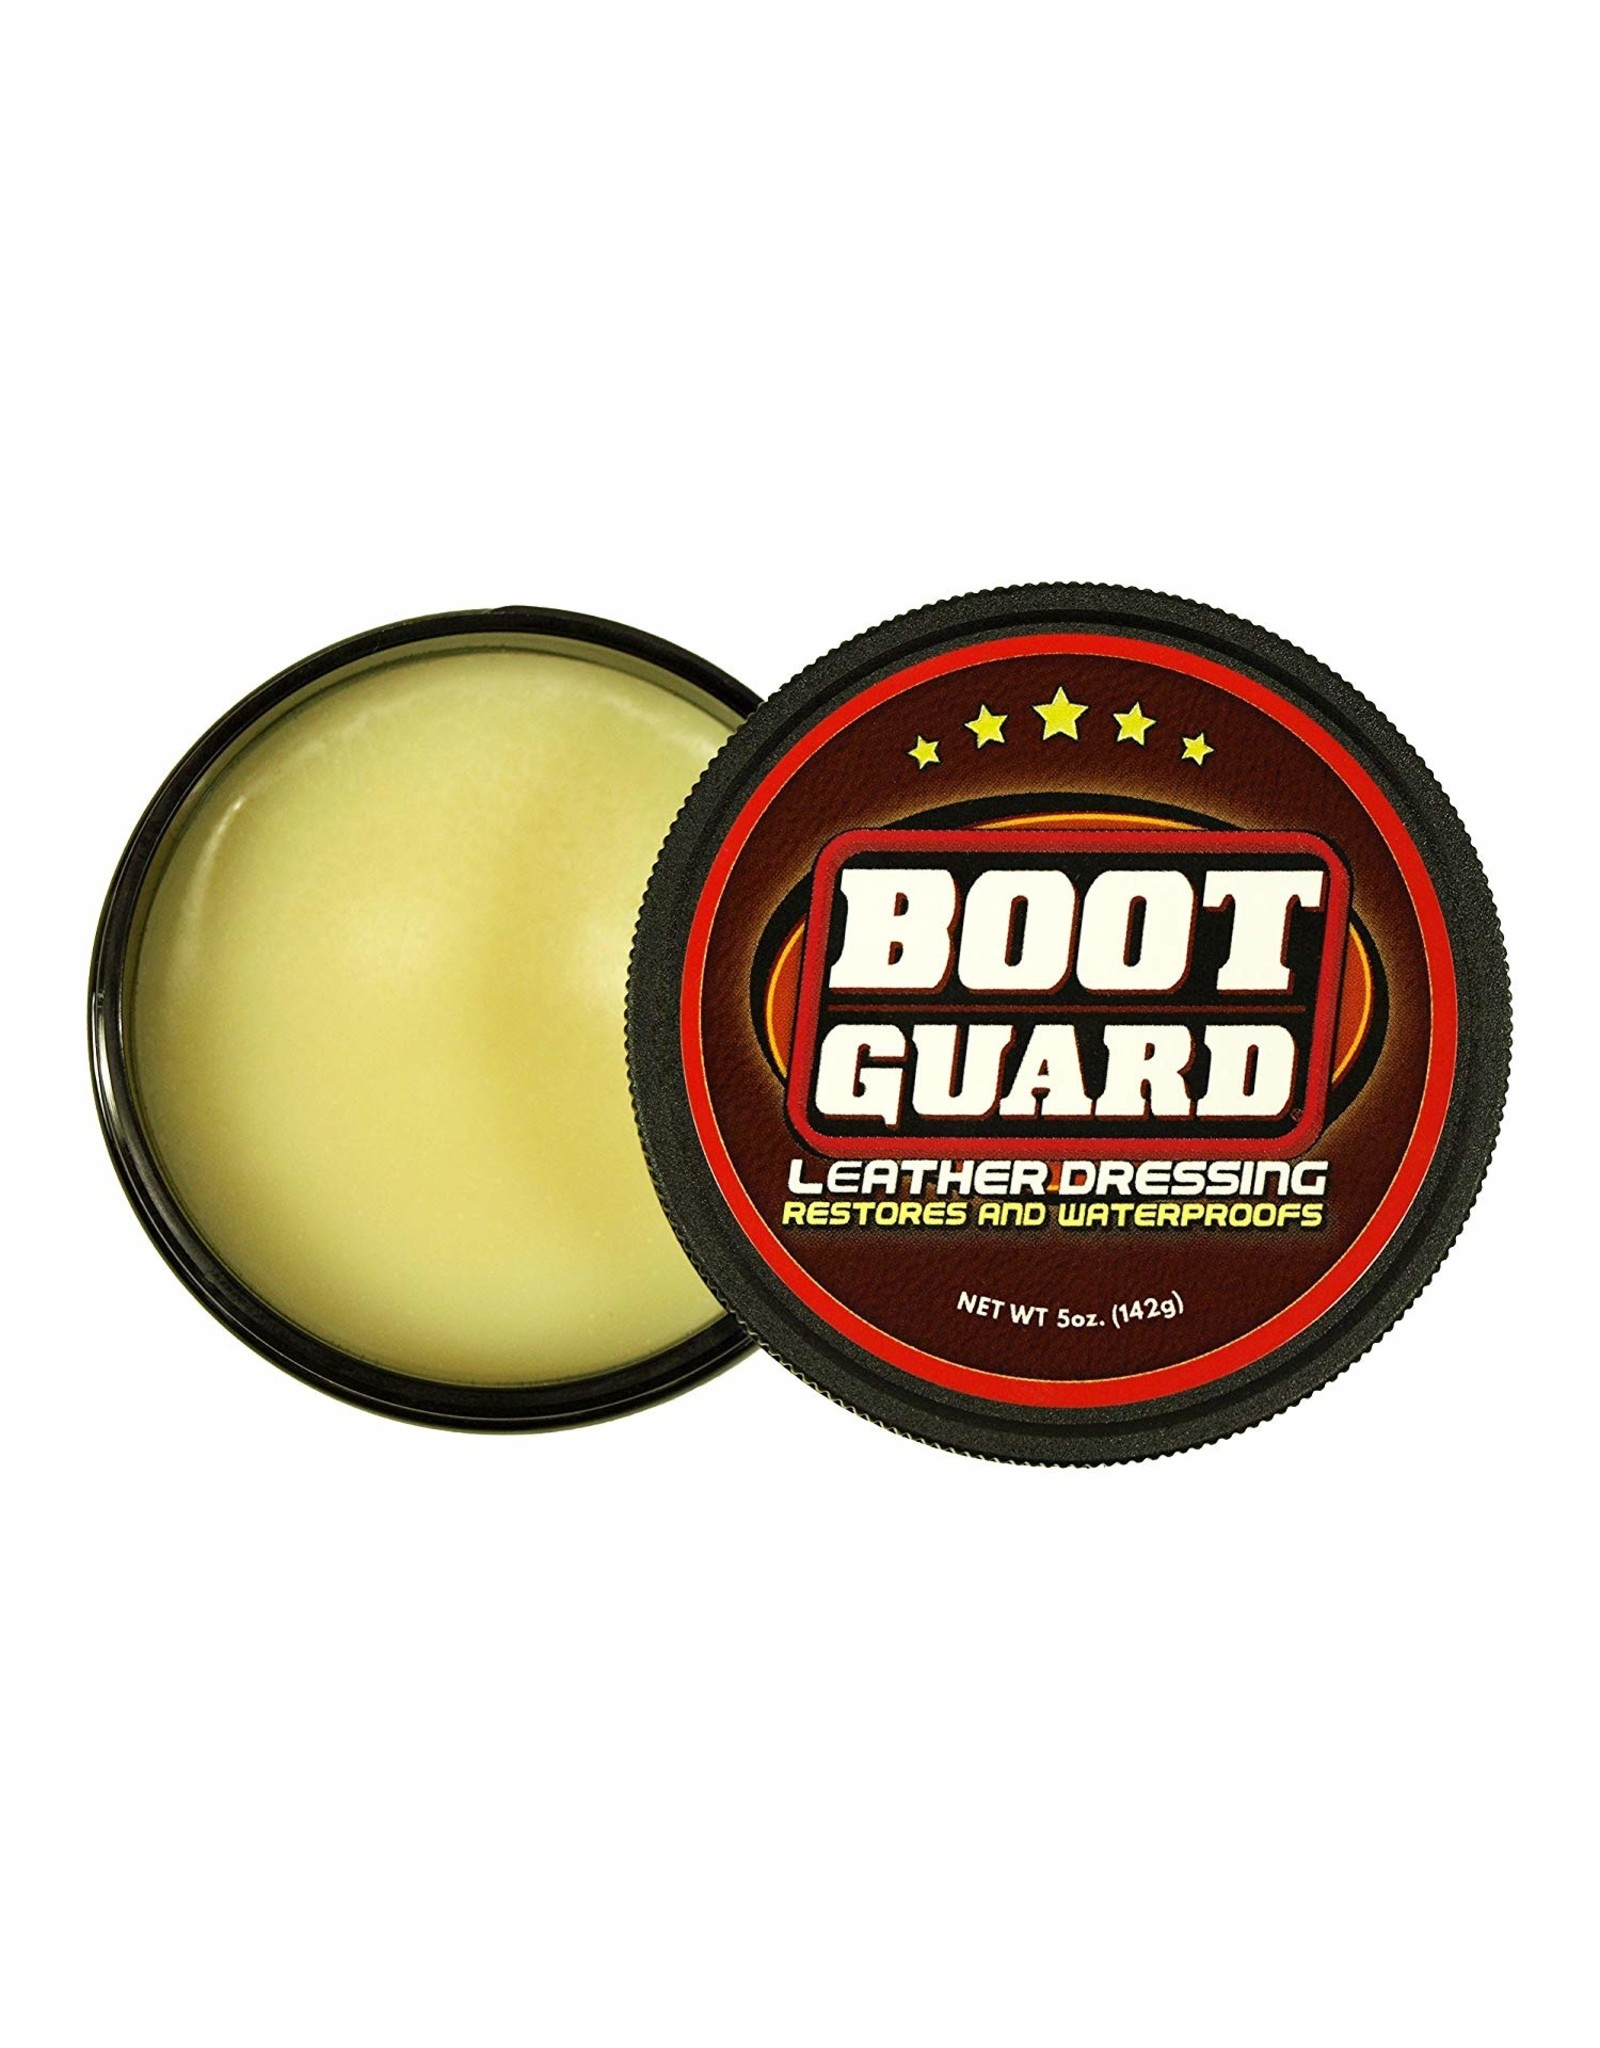 Boot Guard Leather Dressing 5oz